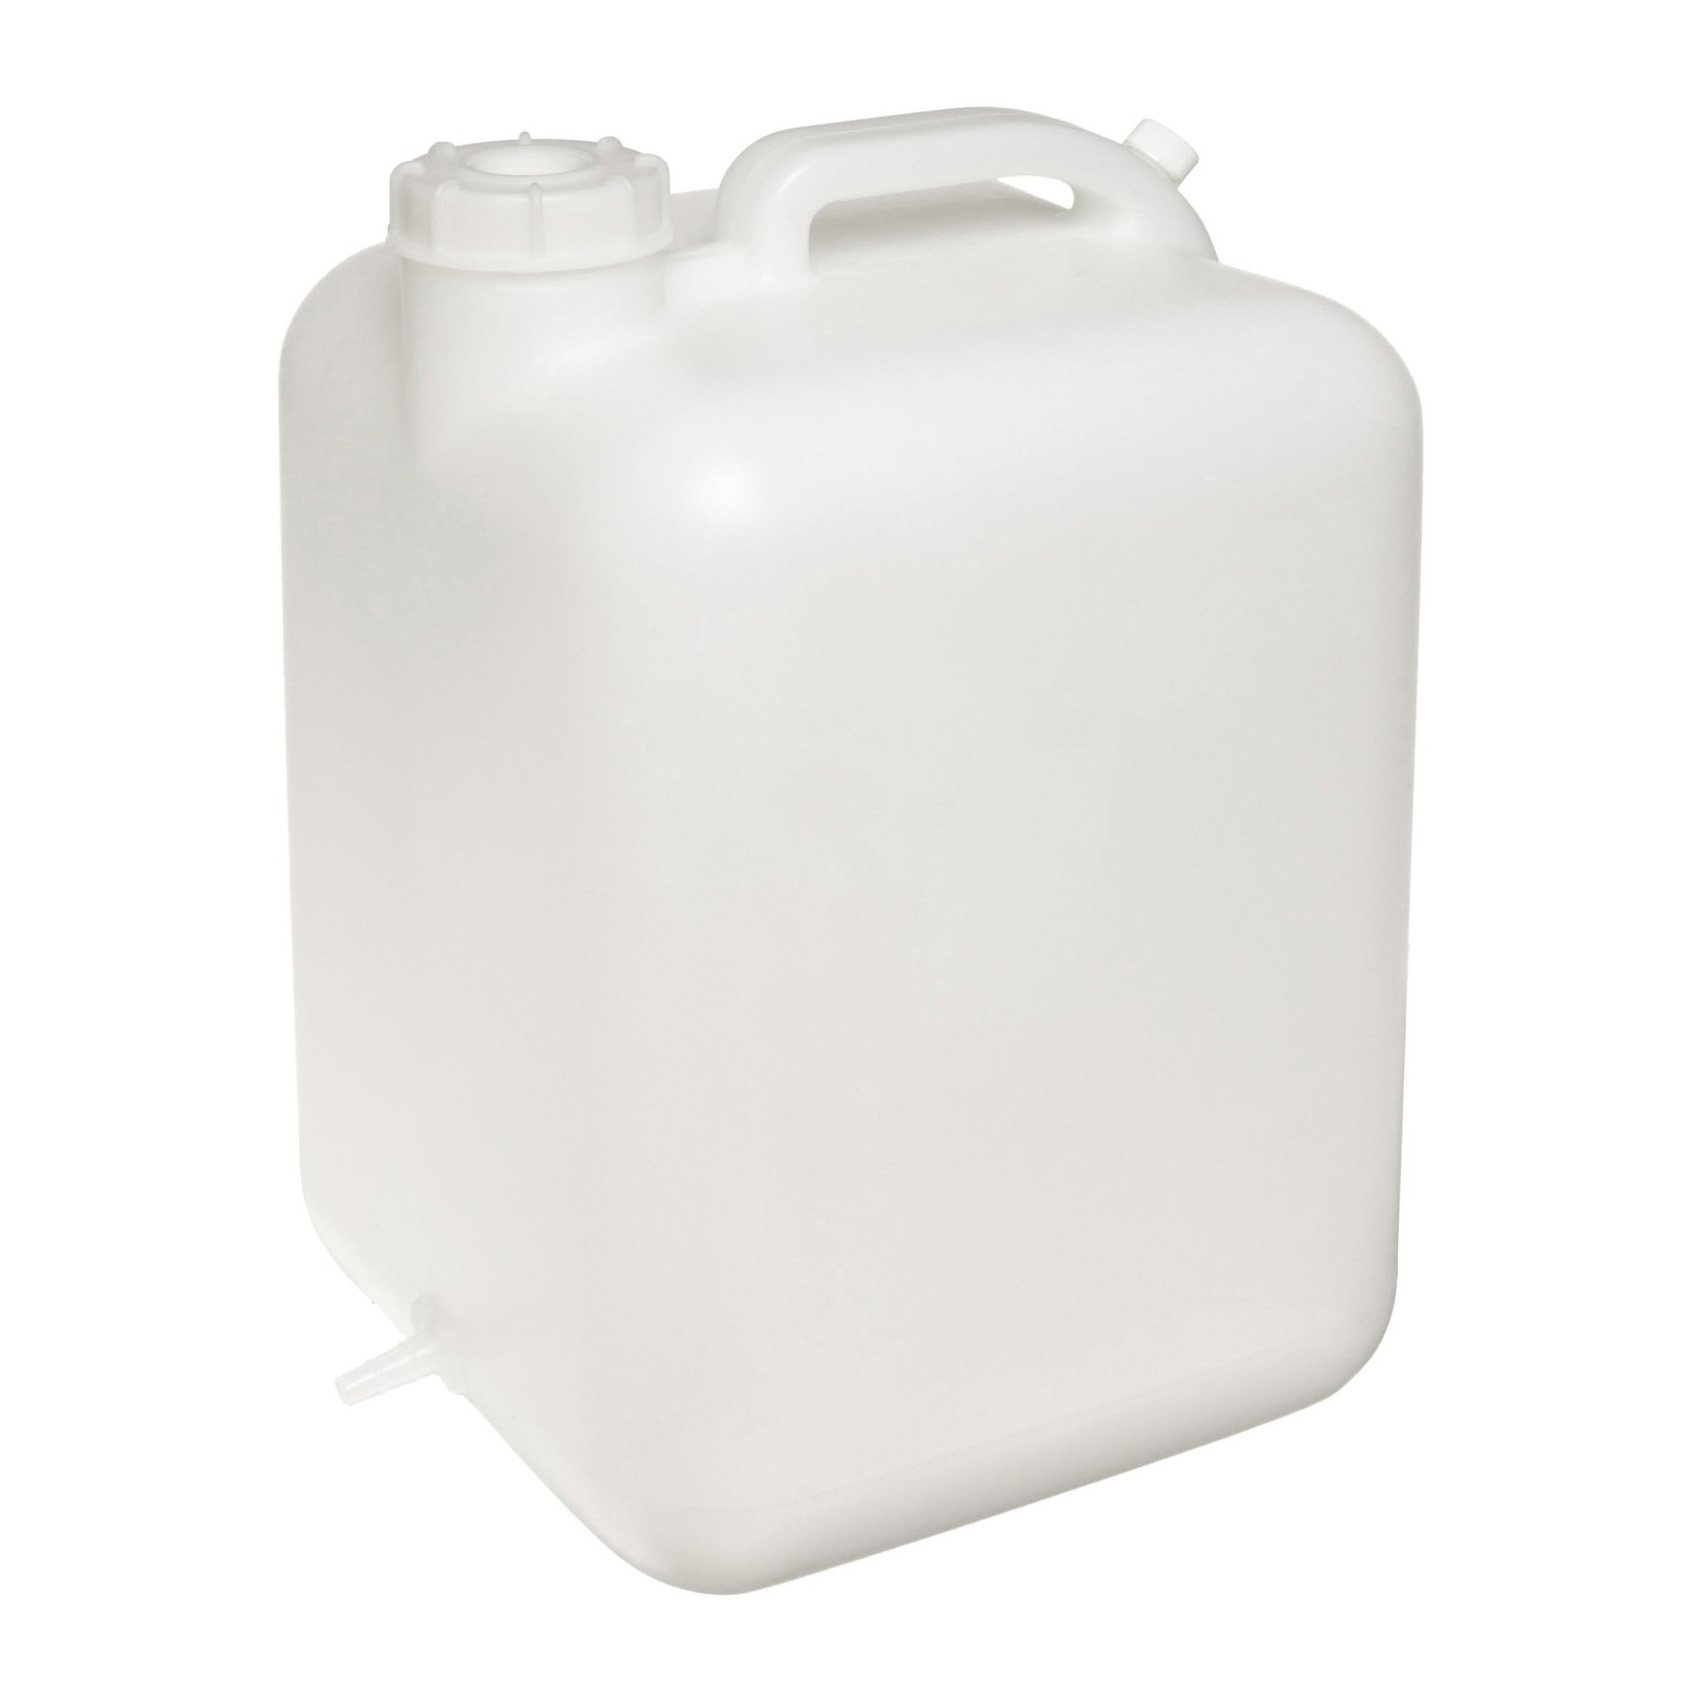 Dynalon 105665 HDPE 5 gallon Hedwin Style Square Lab Carboy, with Tubing and Clamp